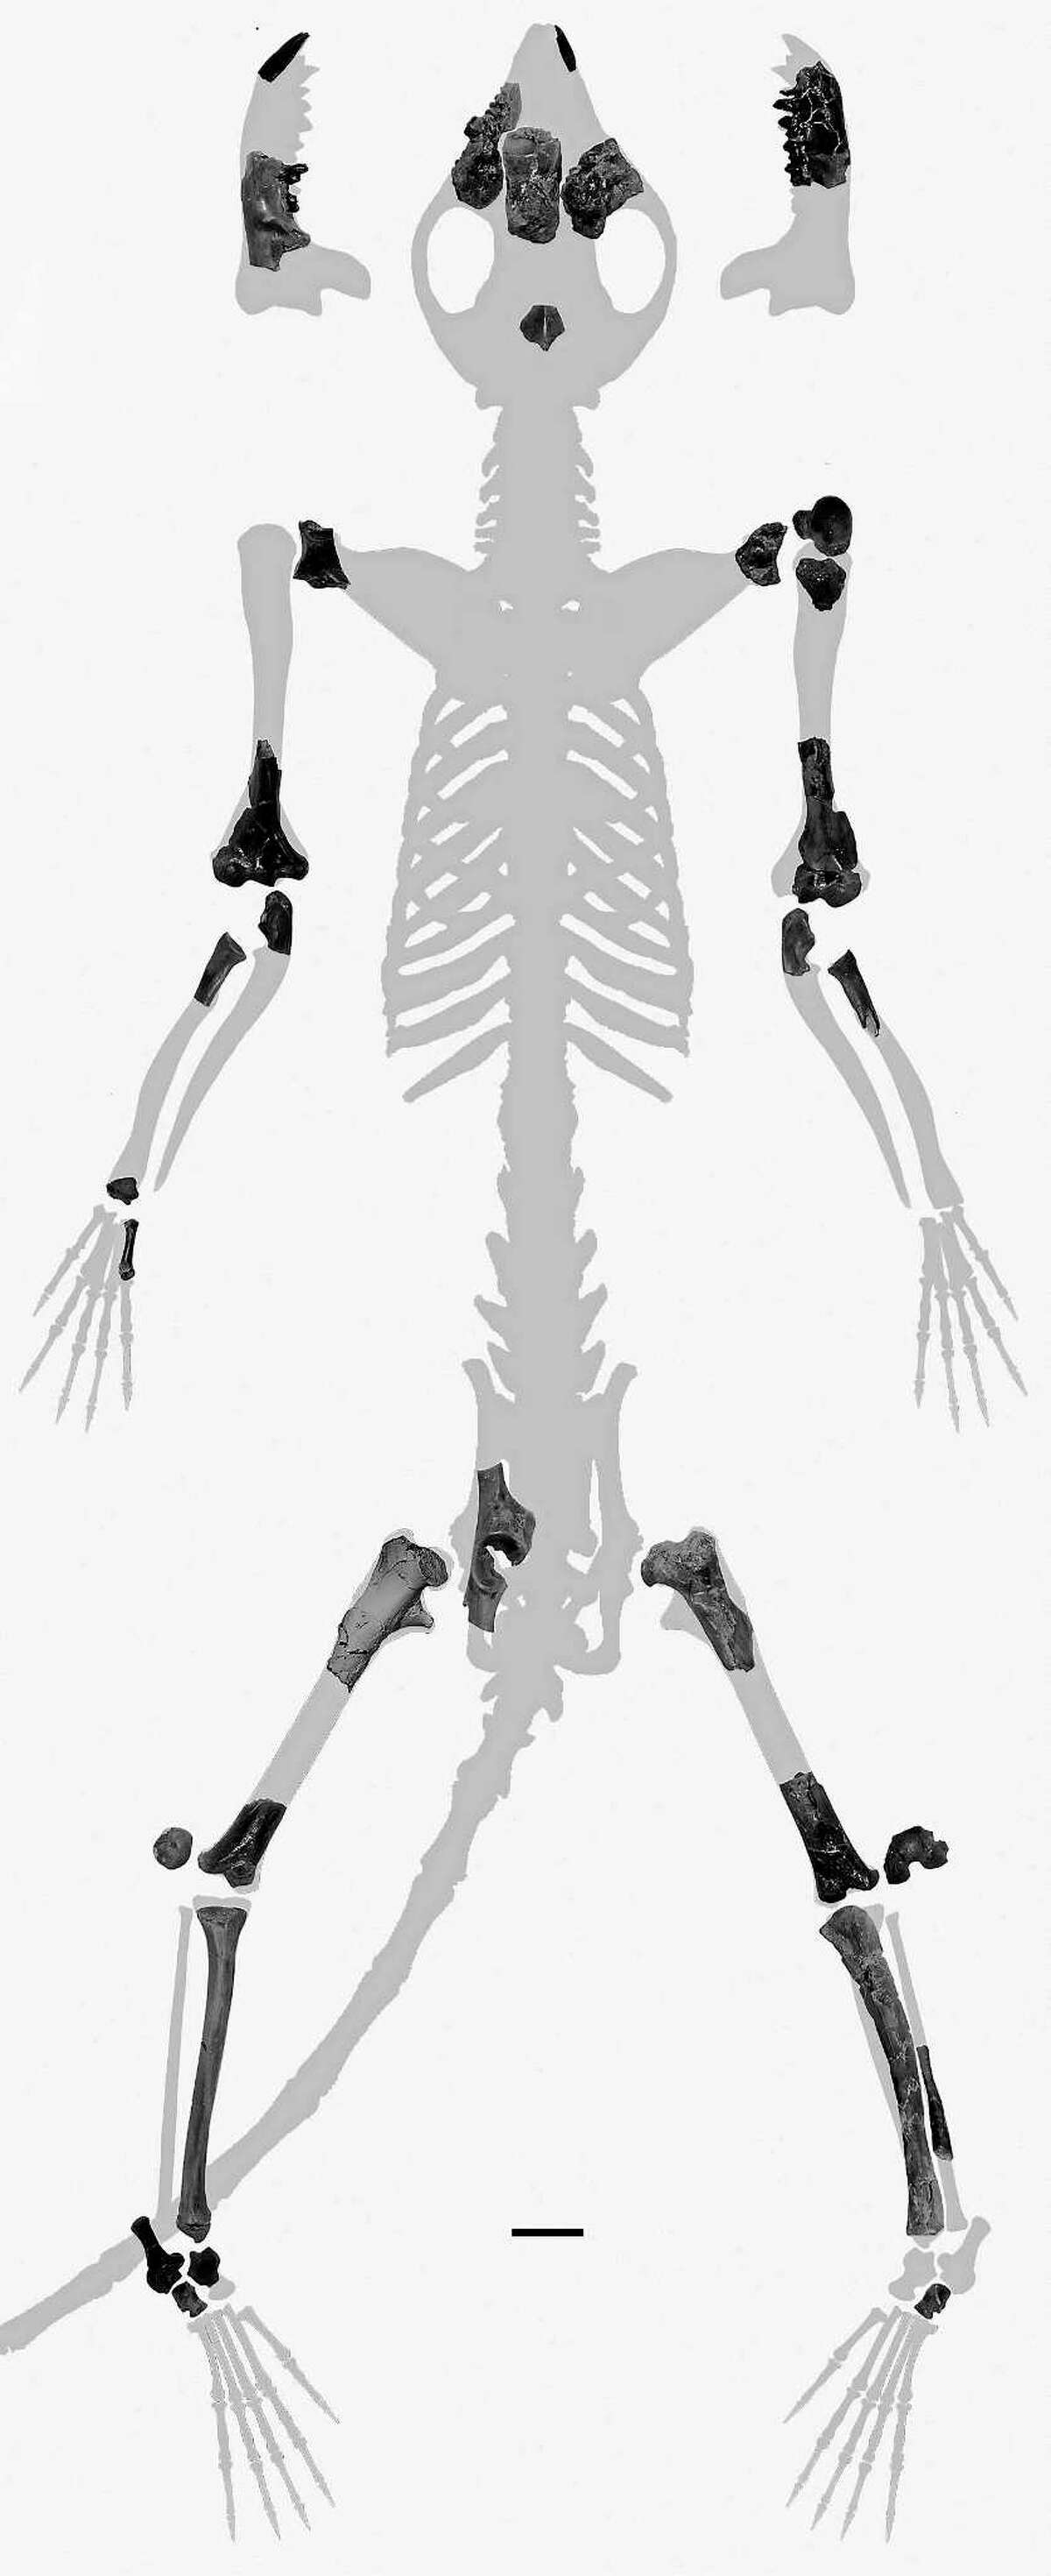 The bones recovered from Torrejonia, considered the first primate.